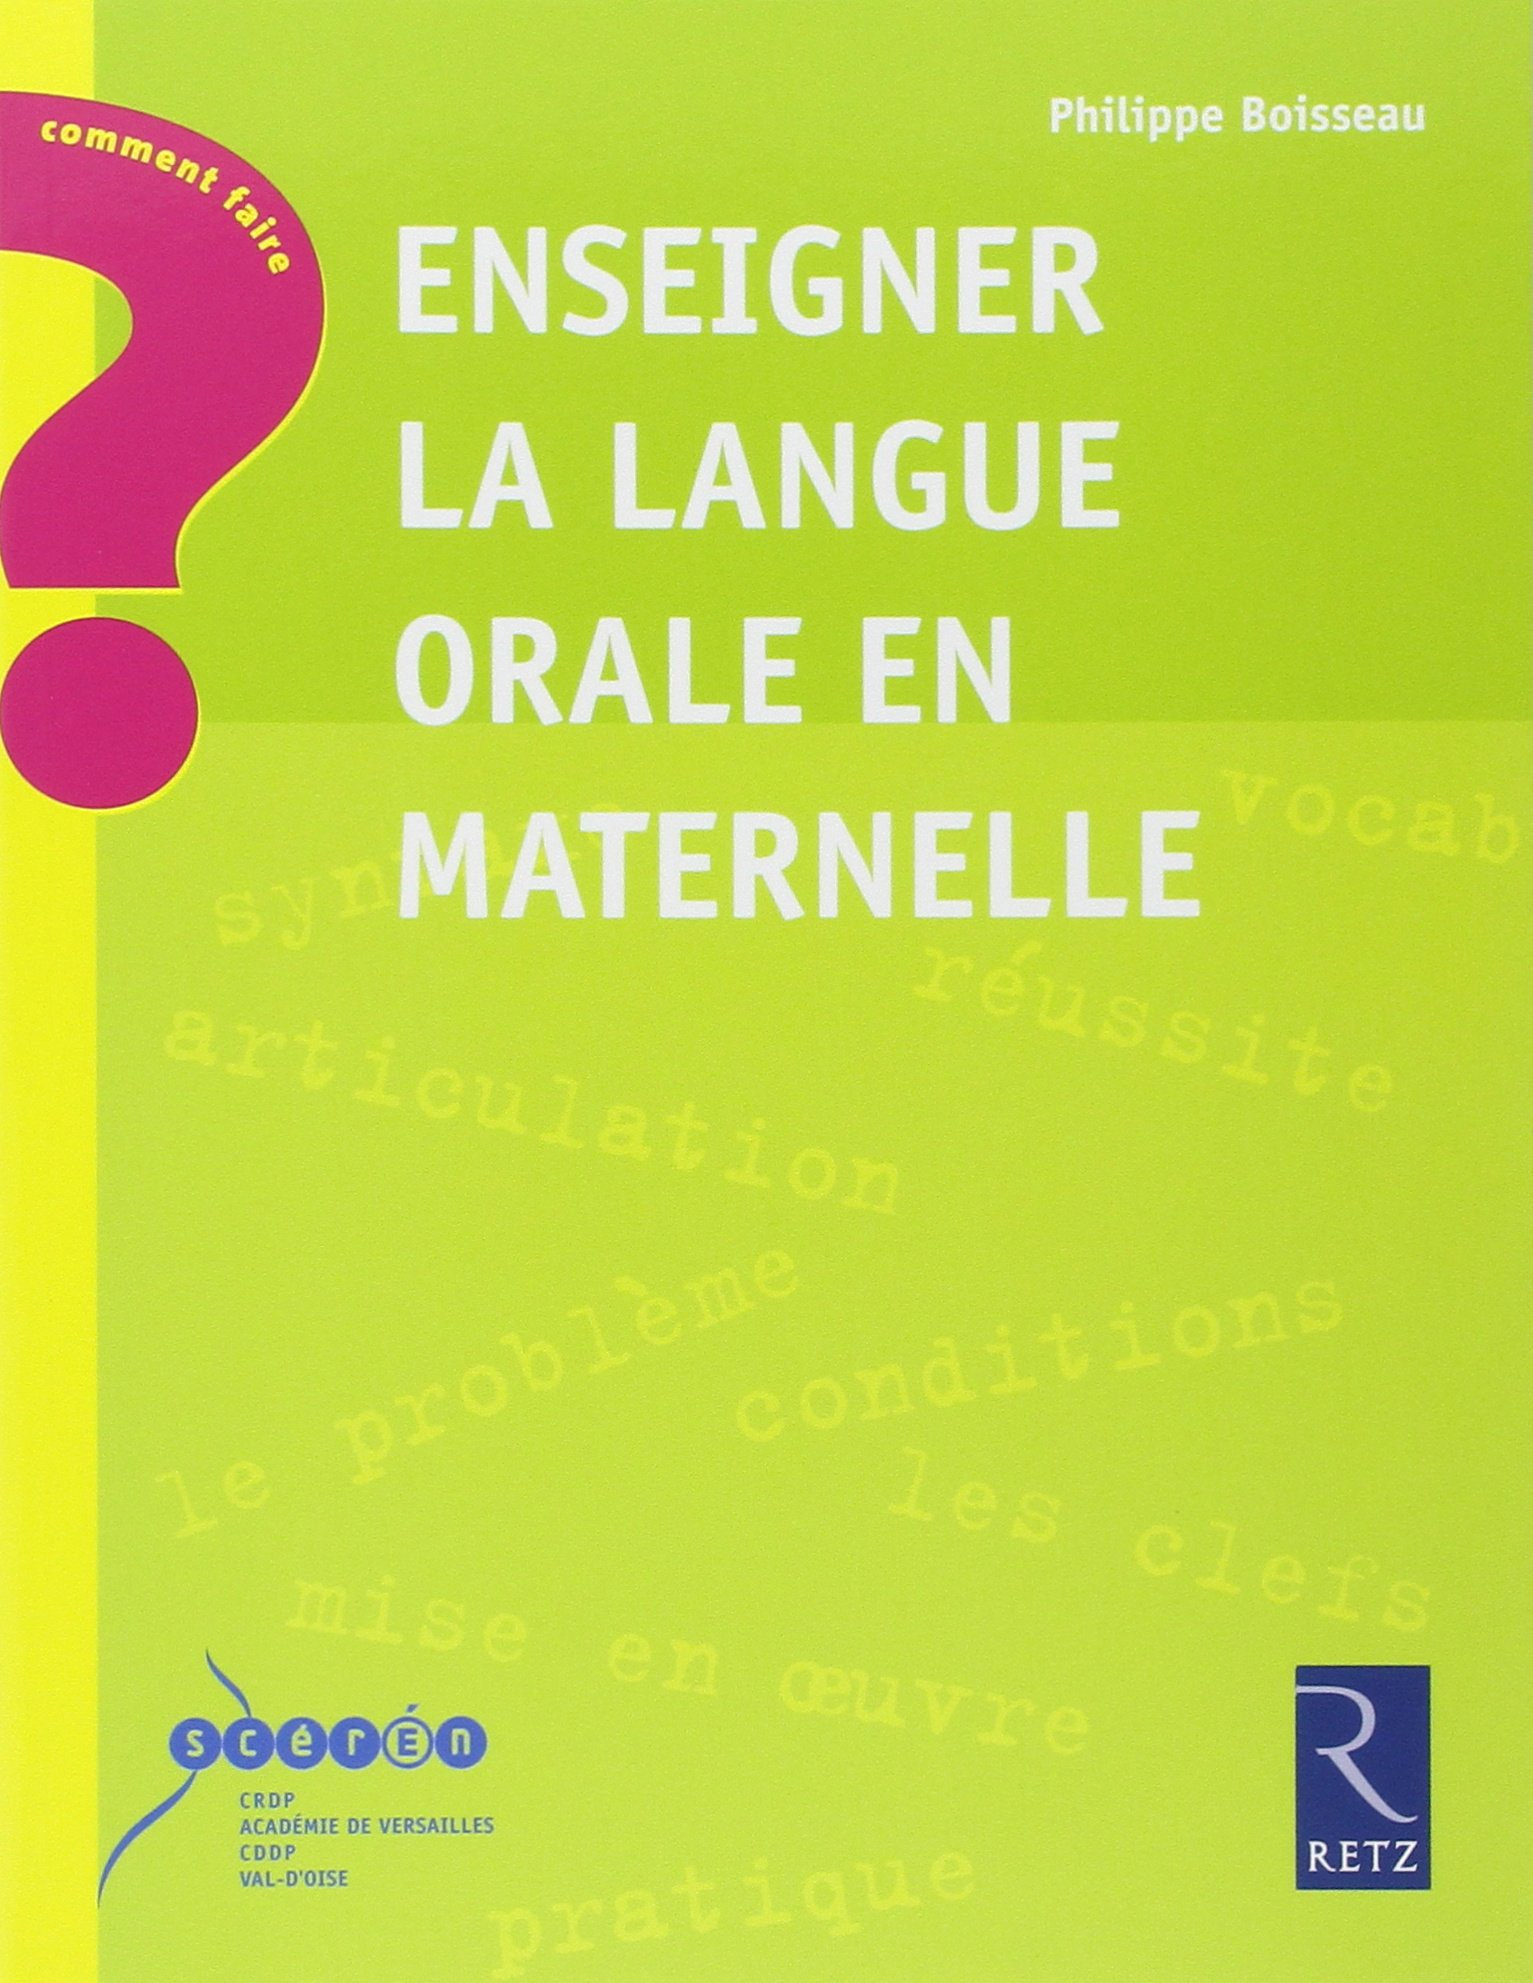 enseigner-langue-orale